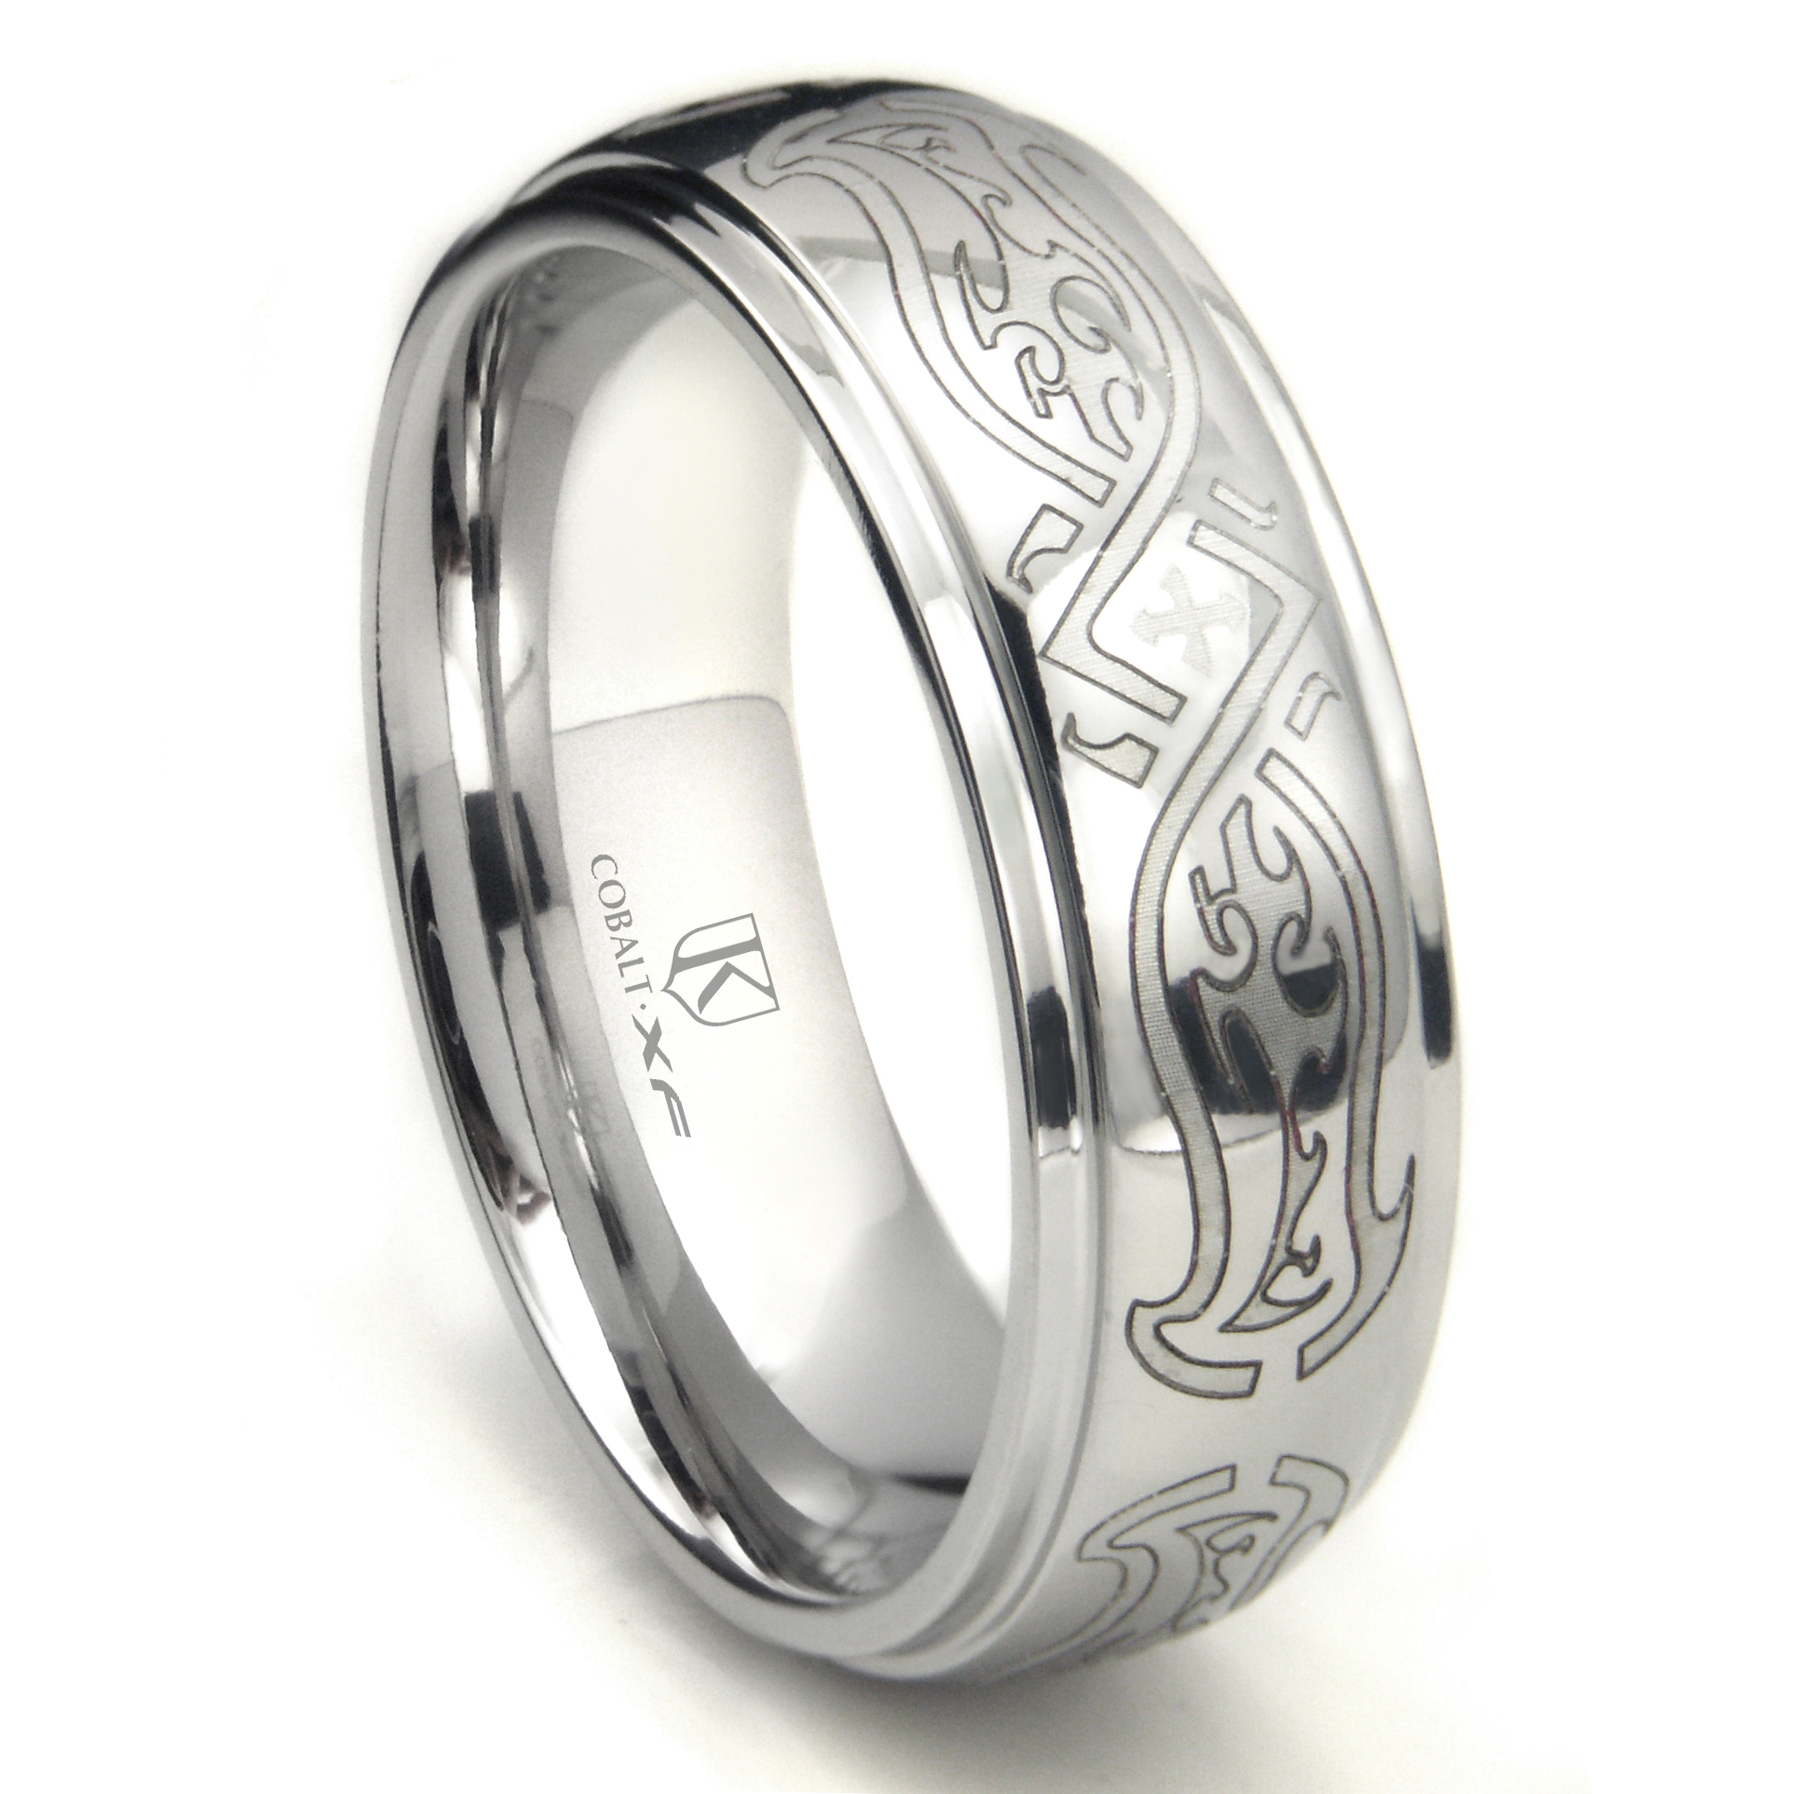 ring gaelic wedding finke tropicaltanning size view celtic sebastian by with best rings full info